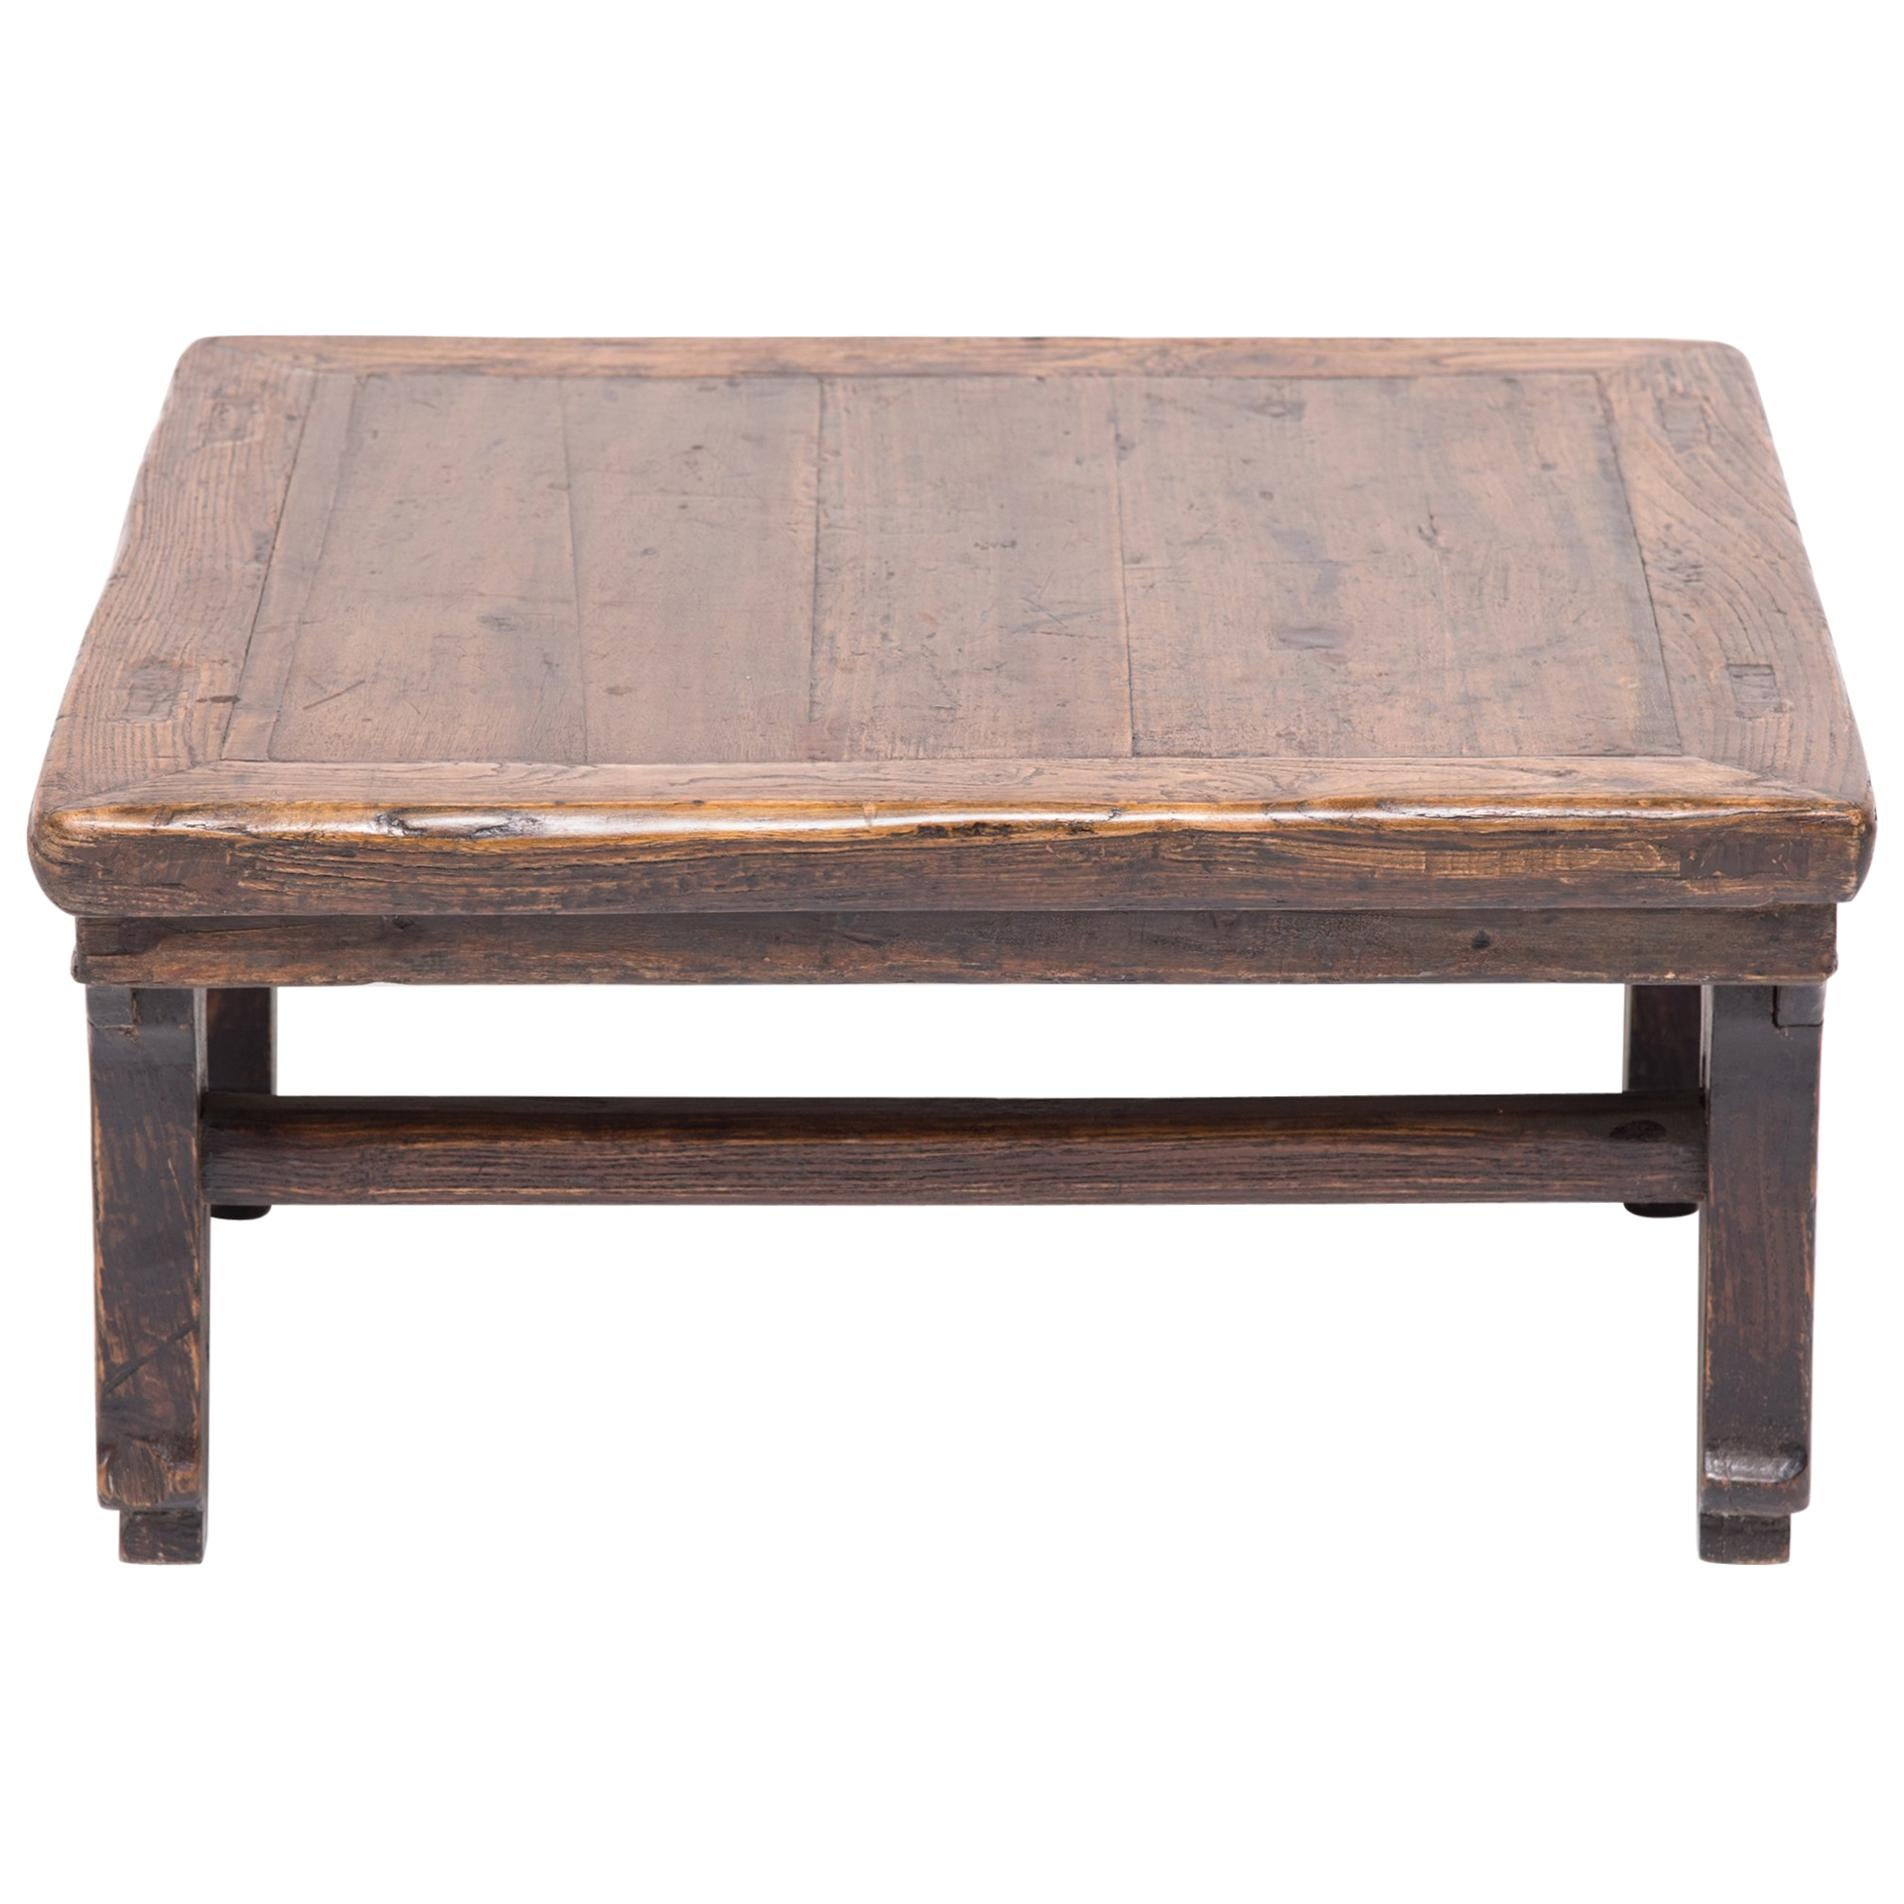 Provincial Chinese Low Table, c. 1850